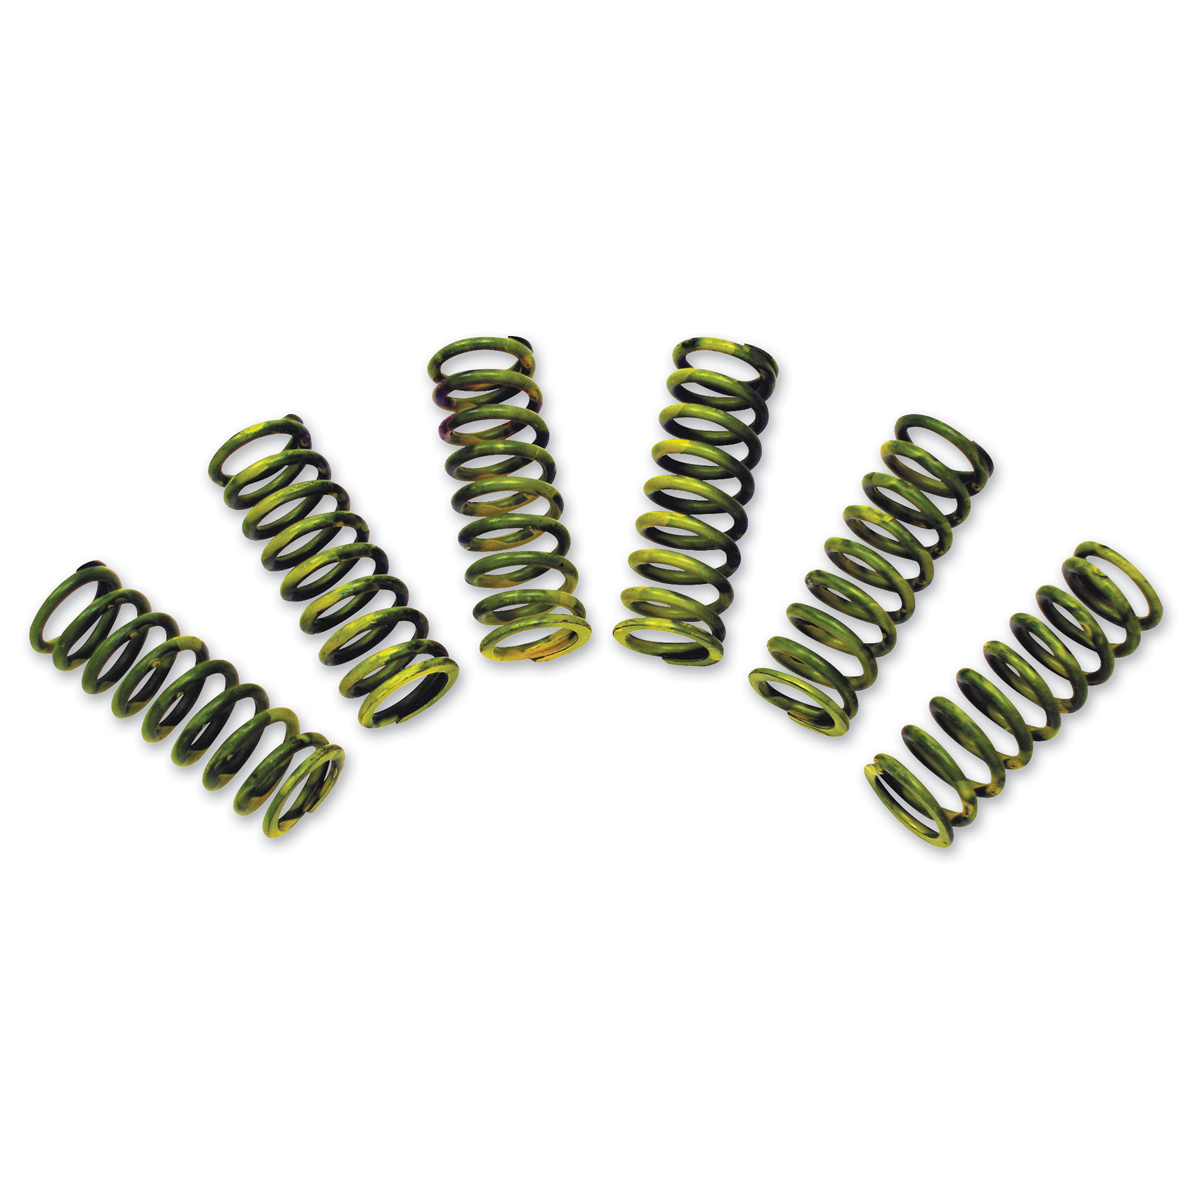 Brock's Performance Clutch Spring Kit